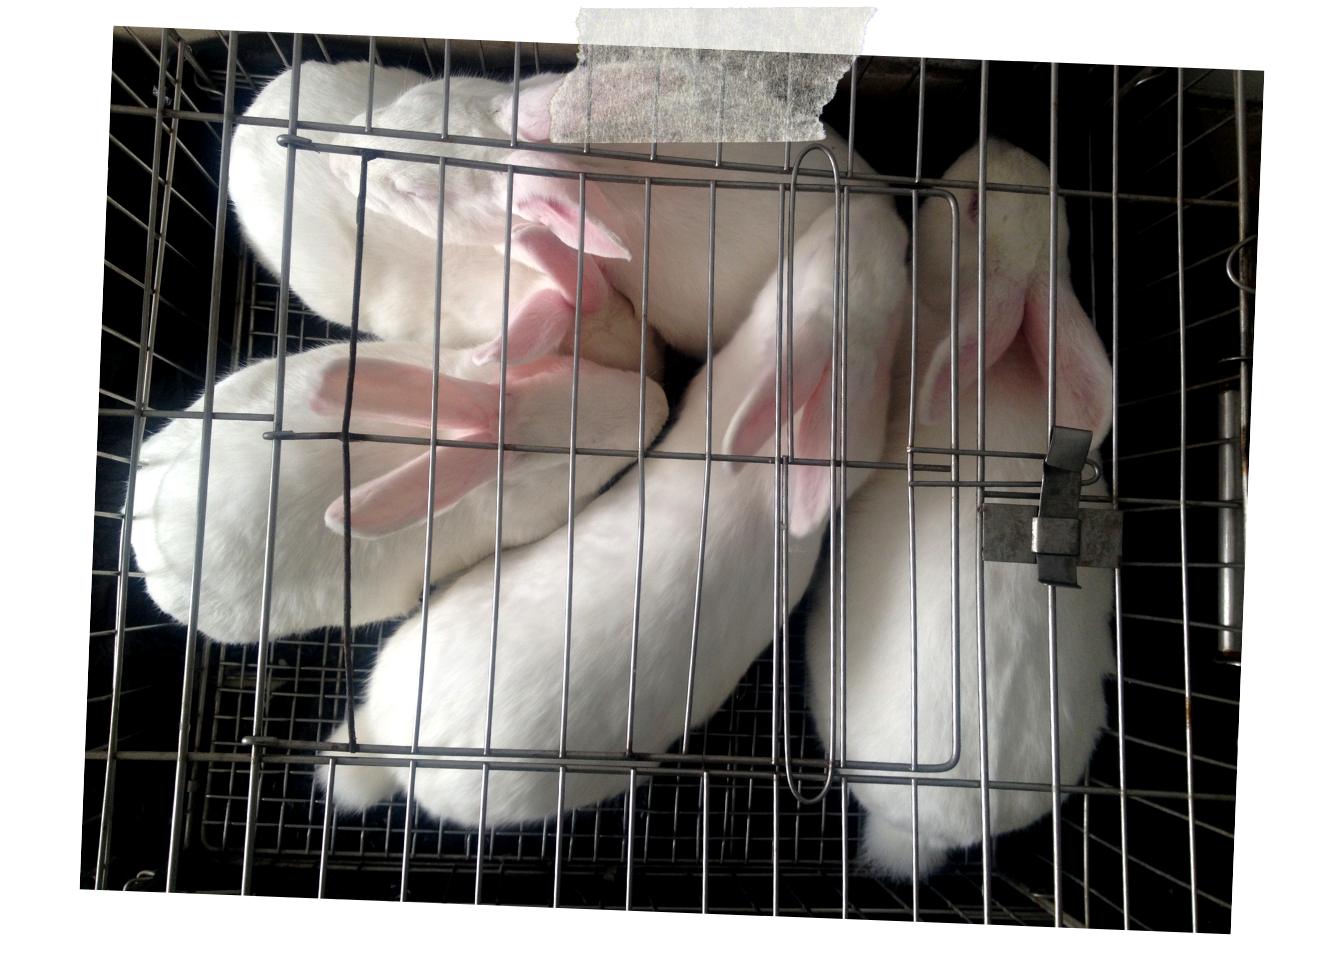 Urge China to End to Animal Testing for Cosmetics - Take a moment to email Terry Branstad, the U.S. Ambassador to China, urging him to work with the Chinese government to push for revised regulations permitting the sale of imported cruelty-free cosmetics.